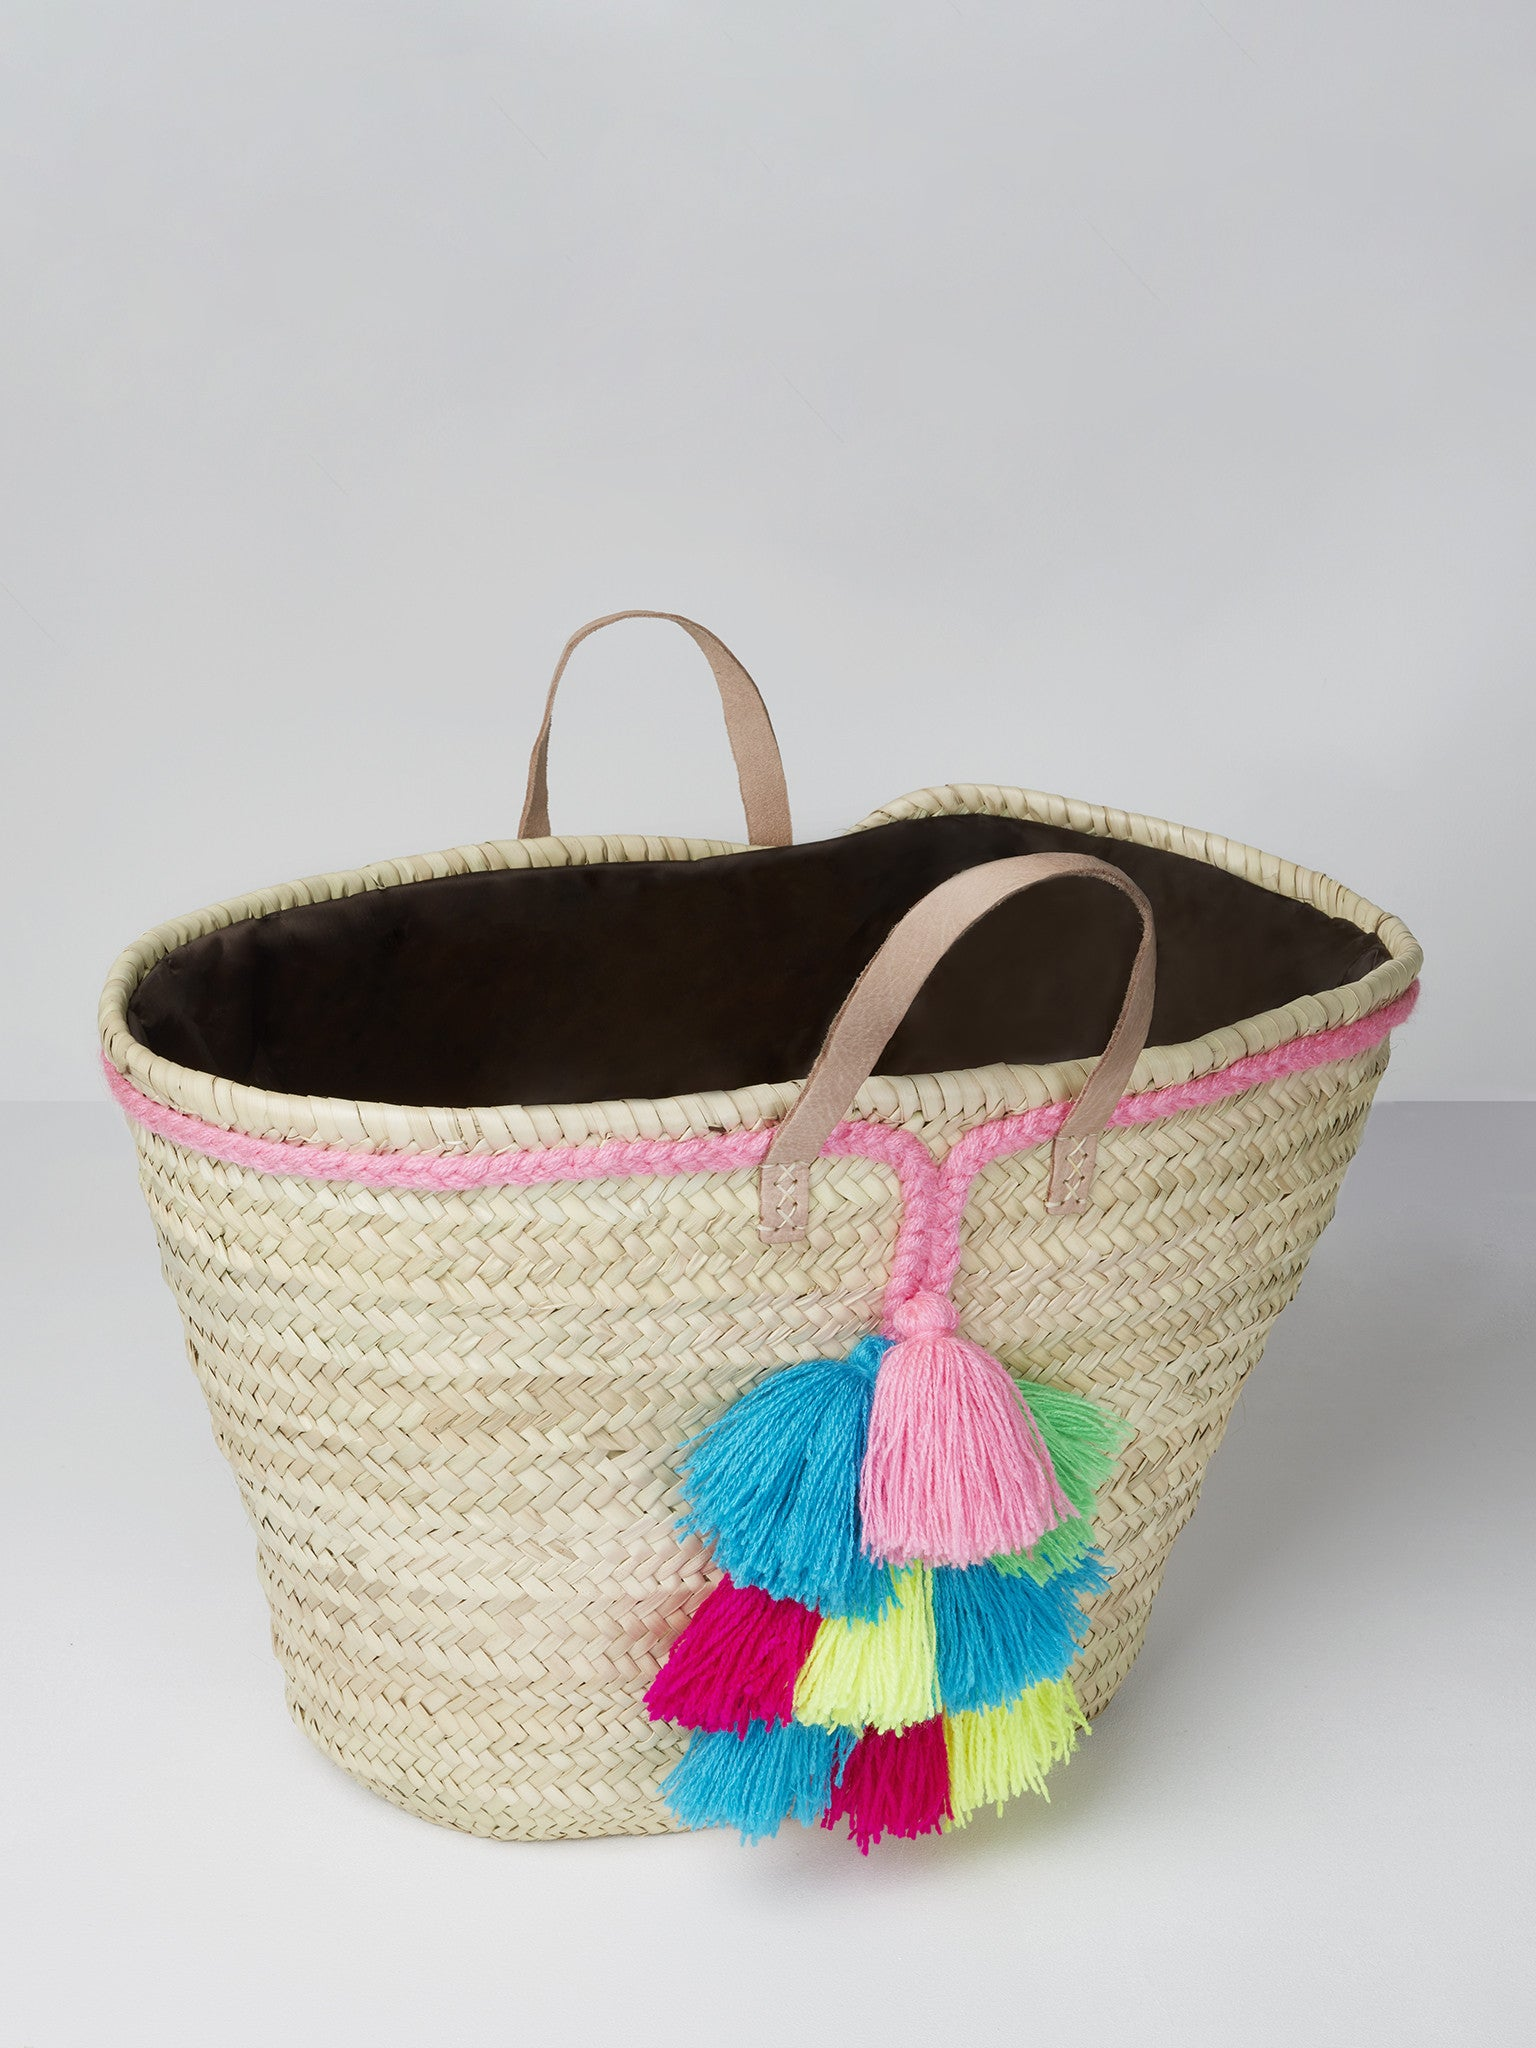 Coachella Basket Bag with Colourful Tassels | Betsy and Floss